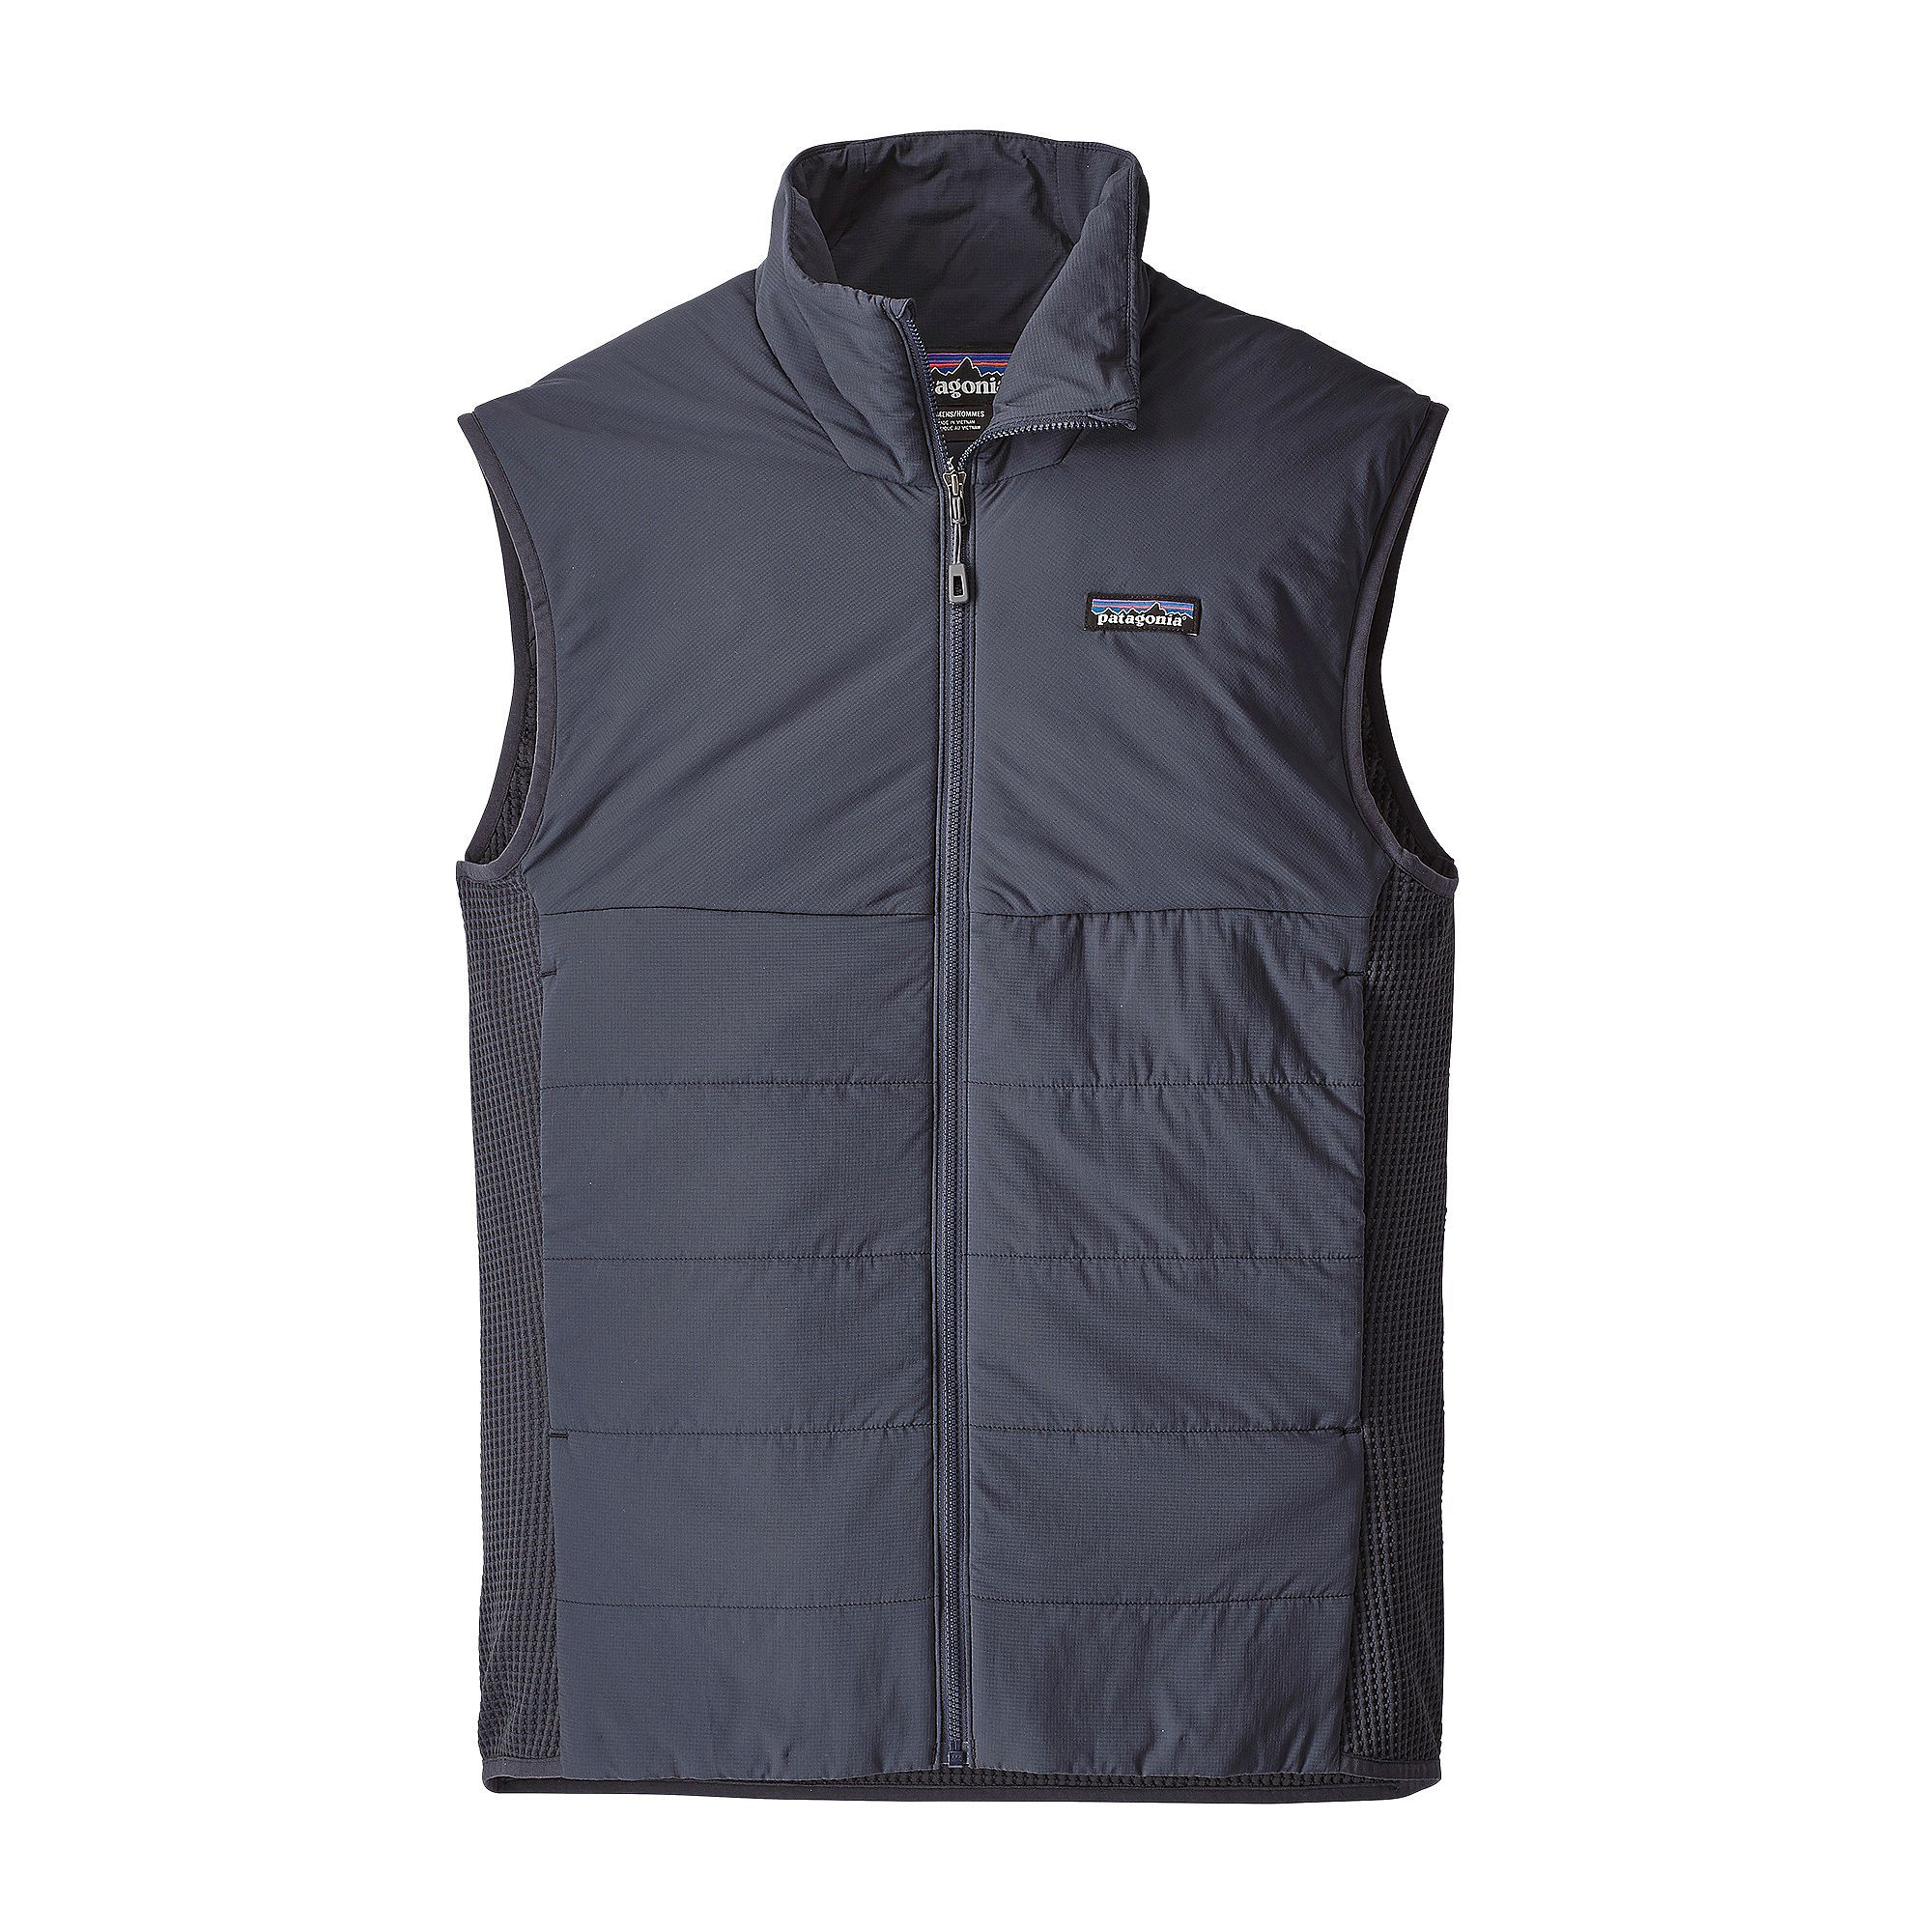 Patagonia Men's NanoAir® Light Hybrid Vest